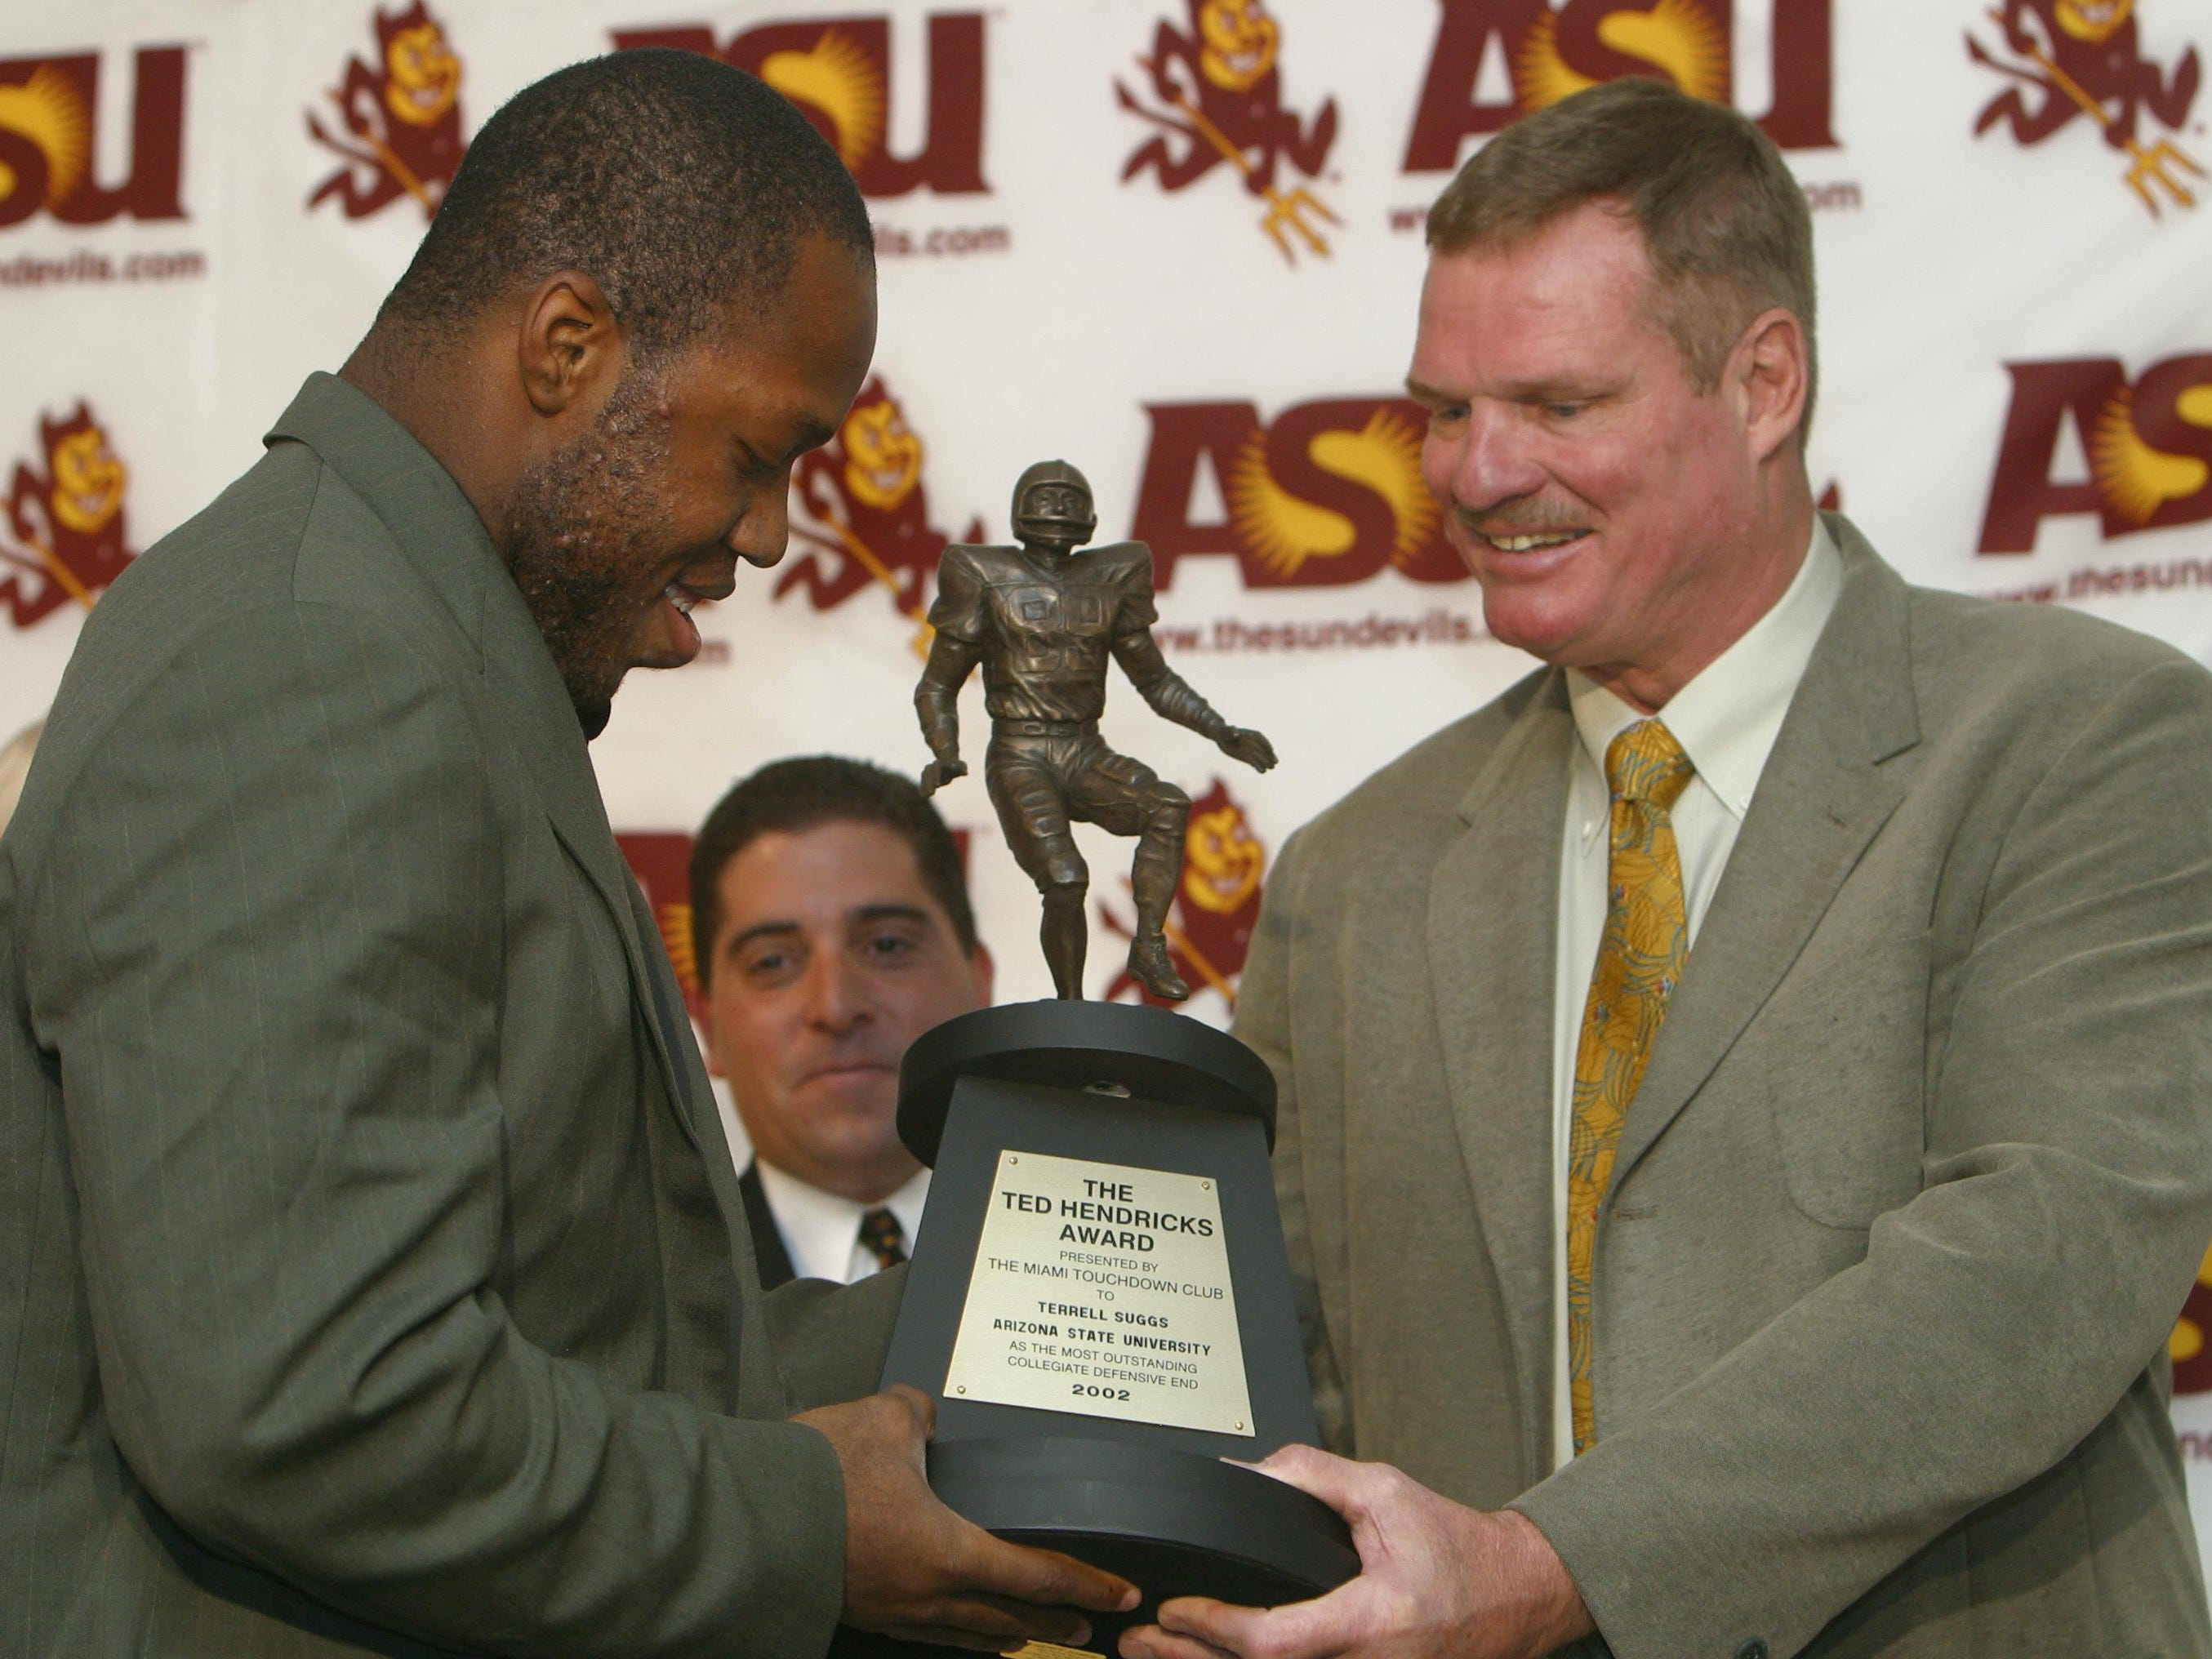 Terrell Suggs, left, accepts the Ted Hendricks award from Ted Hendricks, right, Jan. 2, 2003, at ASU. After receiving the award Suggs announced that he is turning pro.